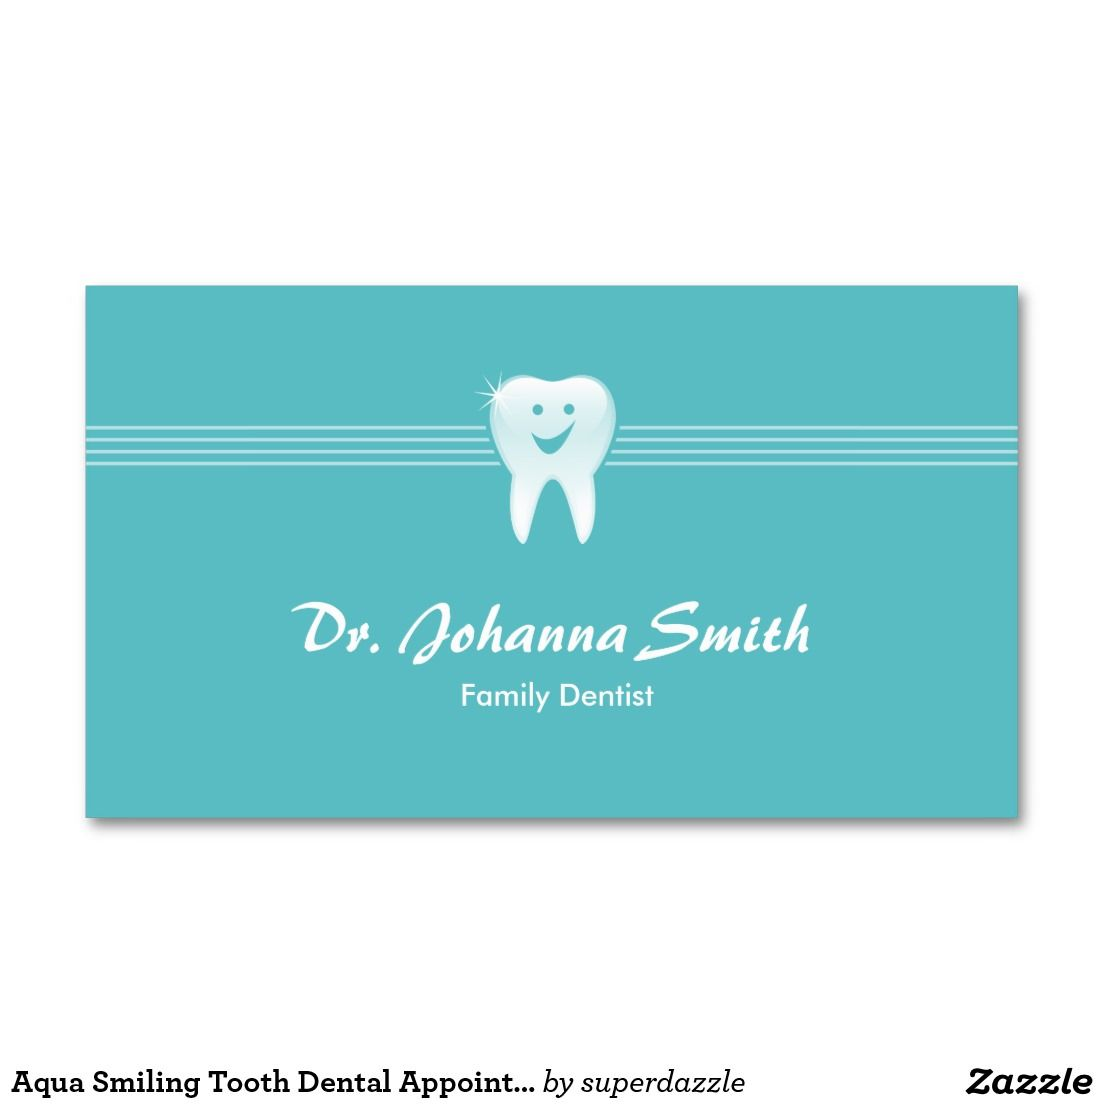 Aqua smiling tooth dental appointment female dental hygienist aqua smiling tooth dental appointment female business card template with an image of a shiny smiling tooth an appointment card on the back of this reheart Choice Image